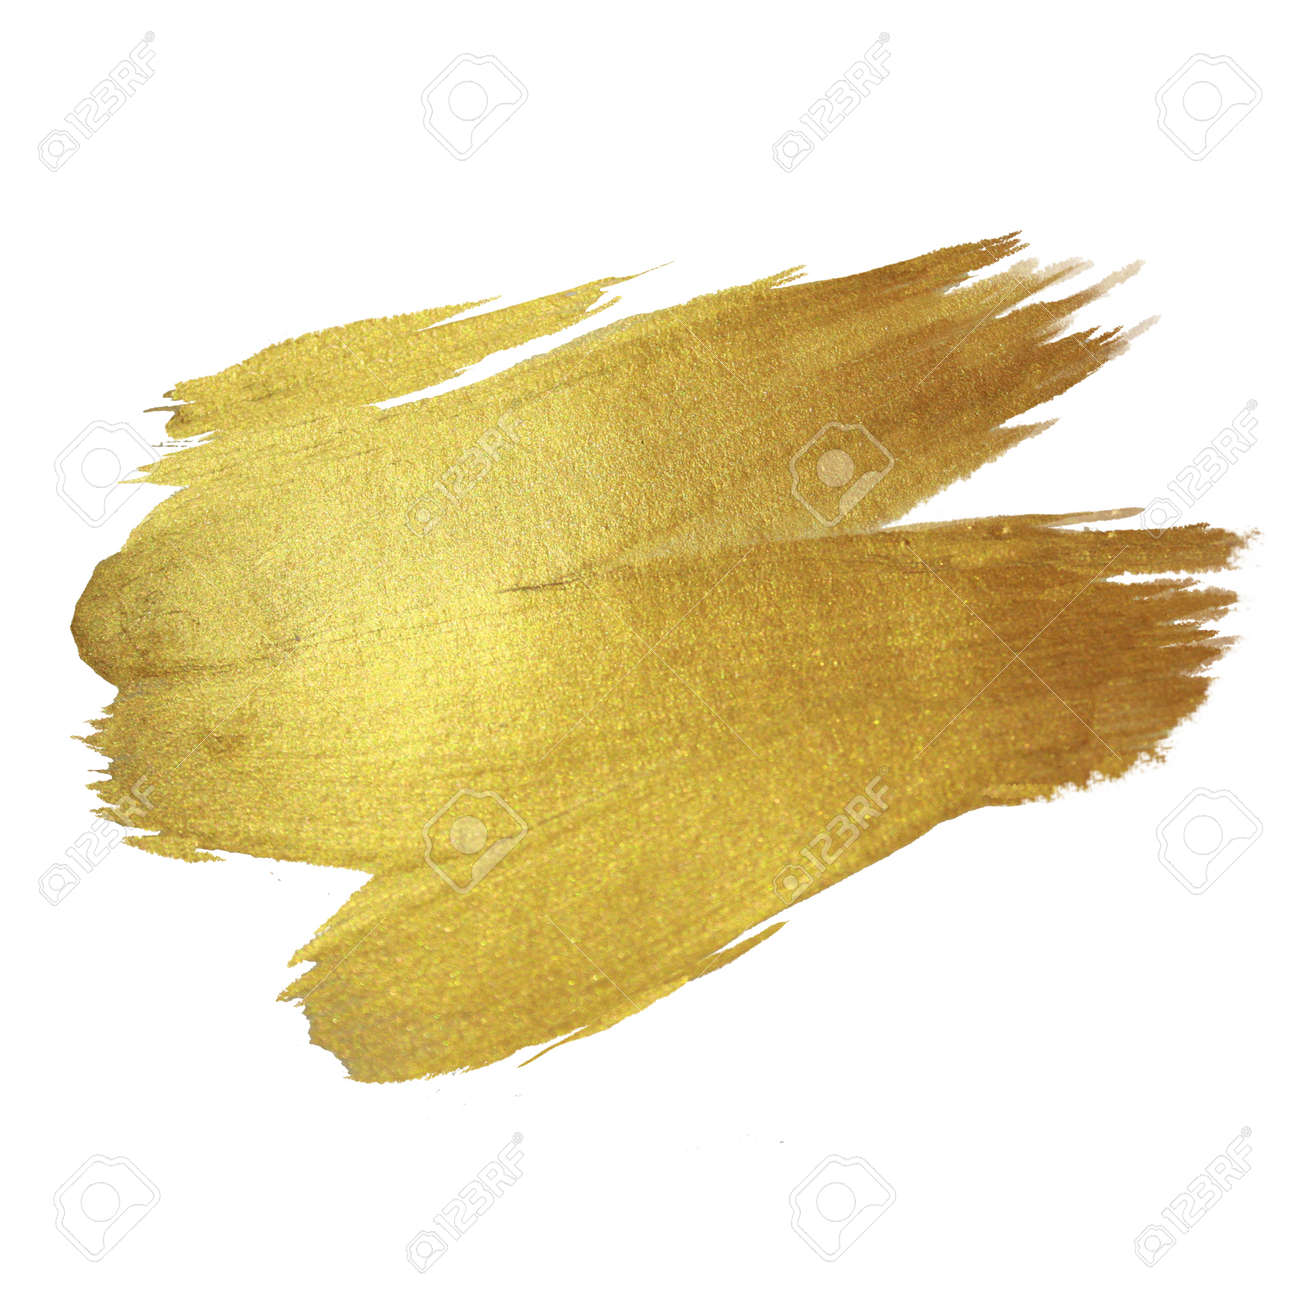 Gold Shining Paint Stain Hand Drawn Illustration - 43555963